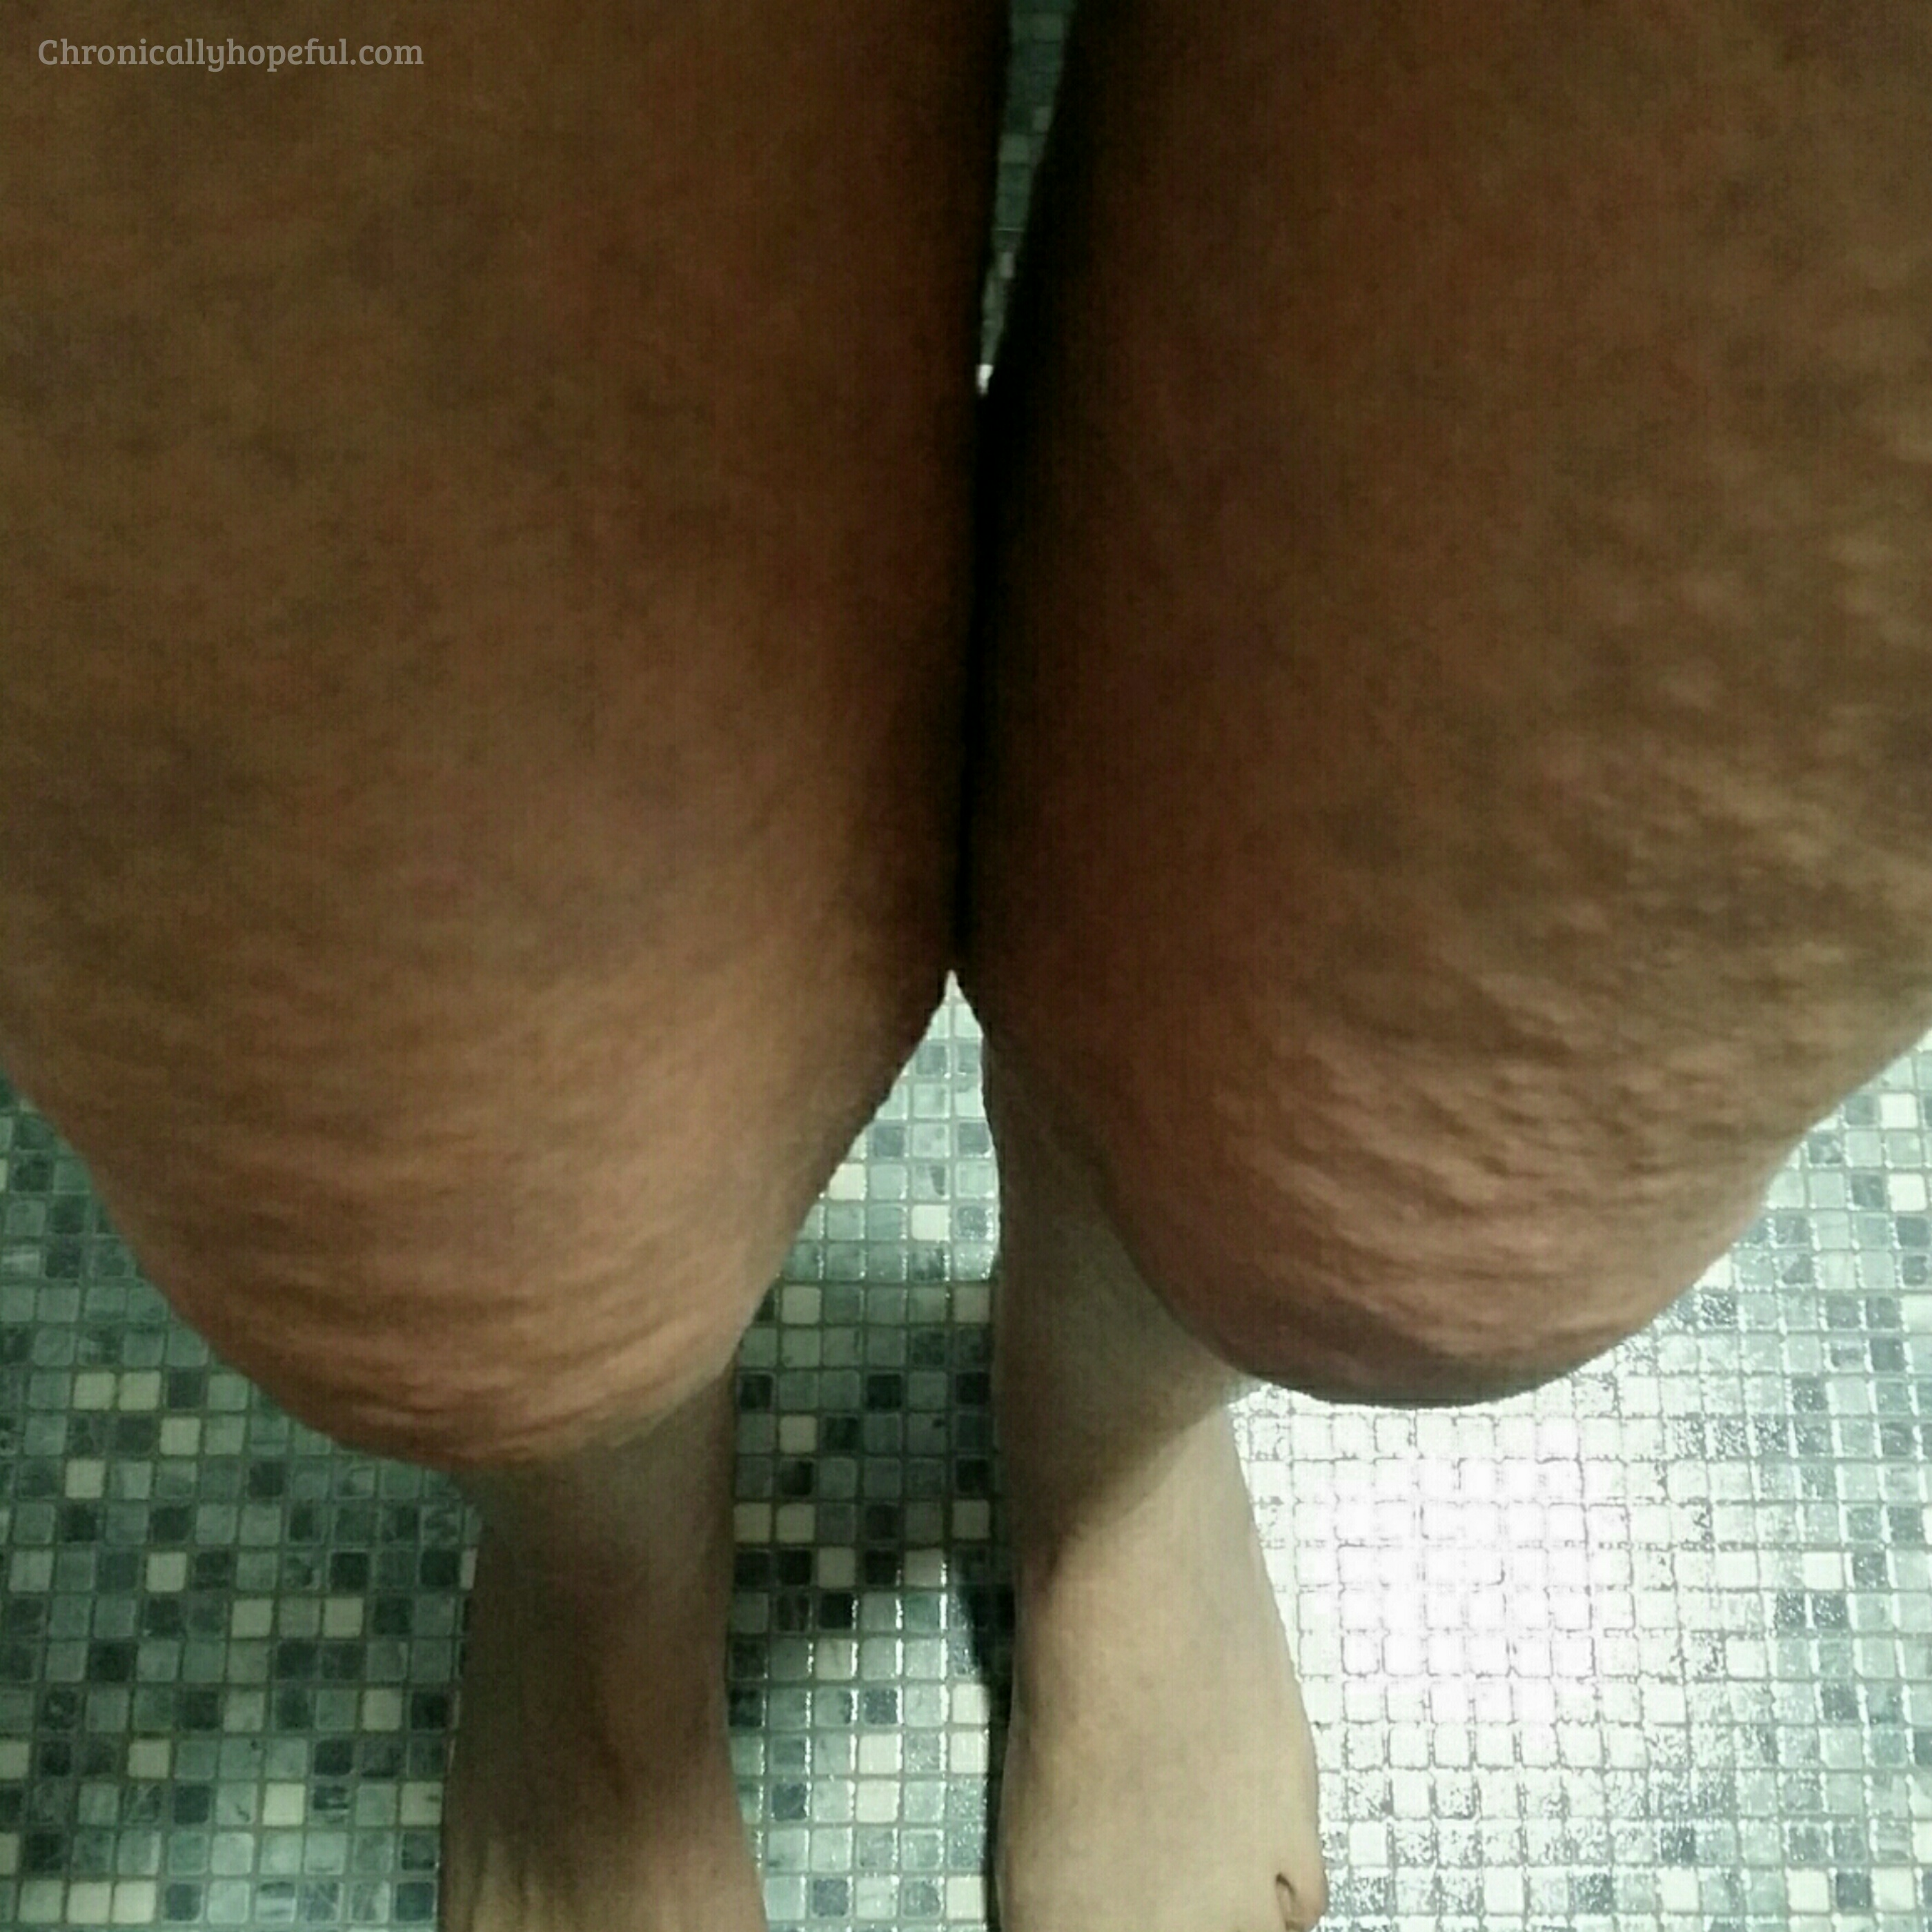 Hives Flaring On Legs, Histamine Intolerance, Chronically Hopeful